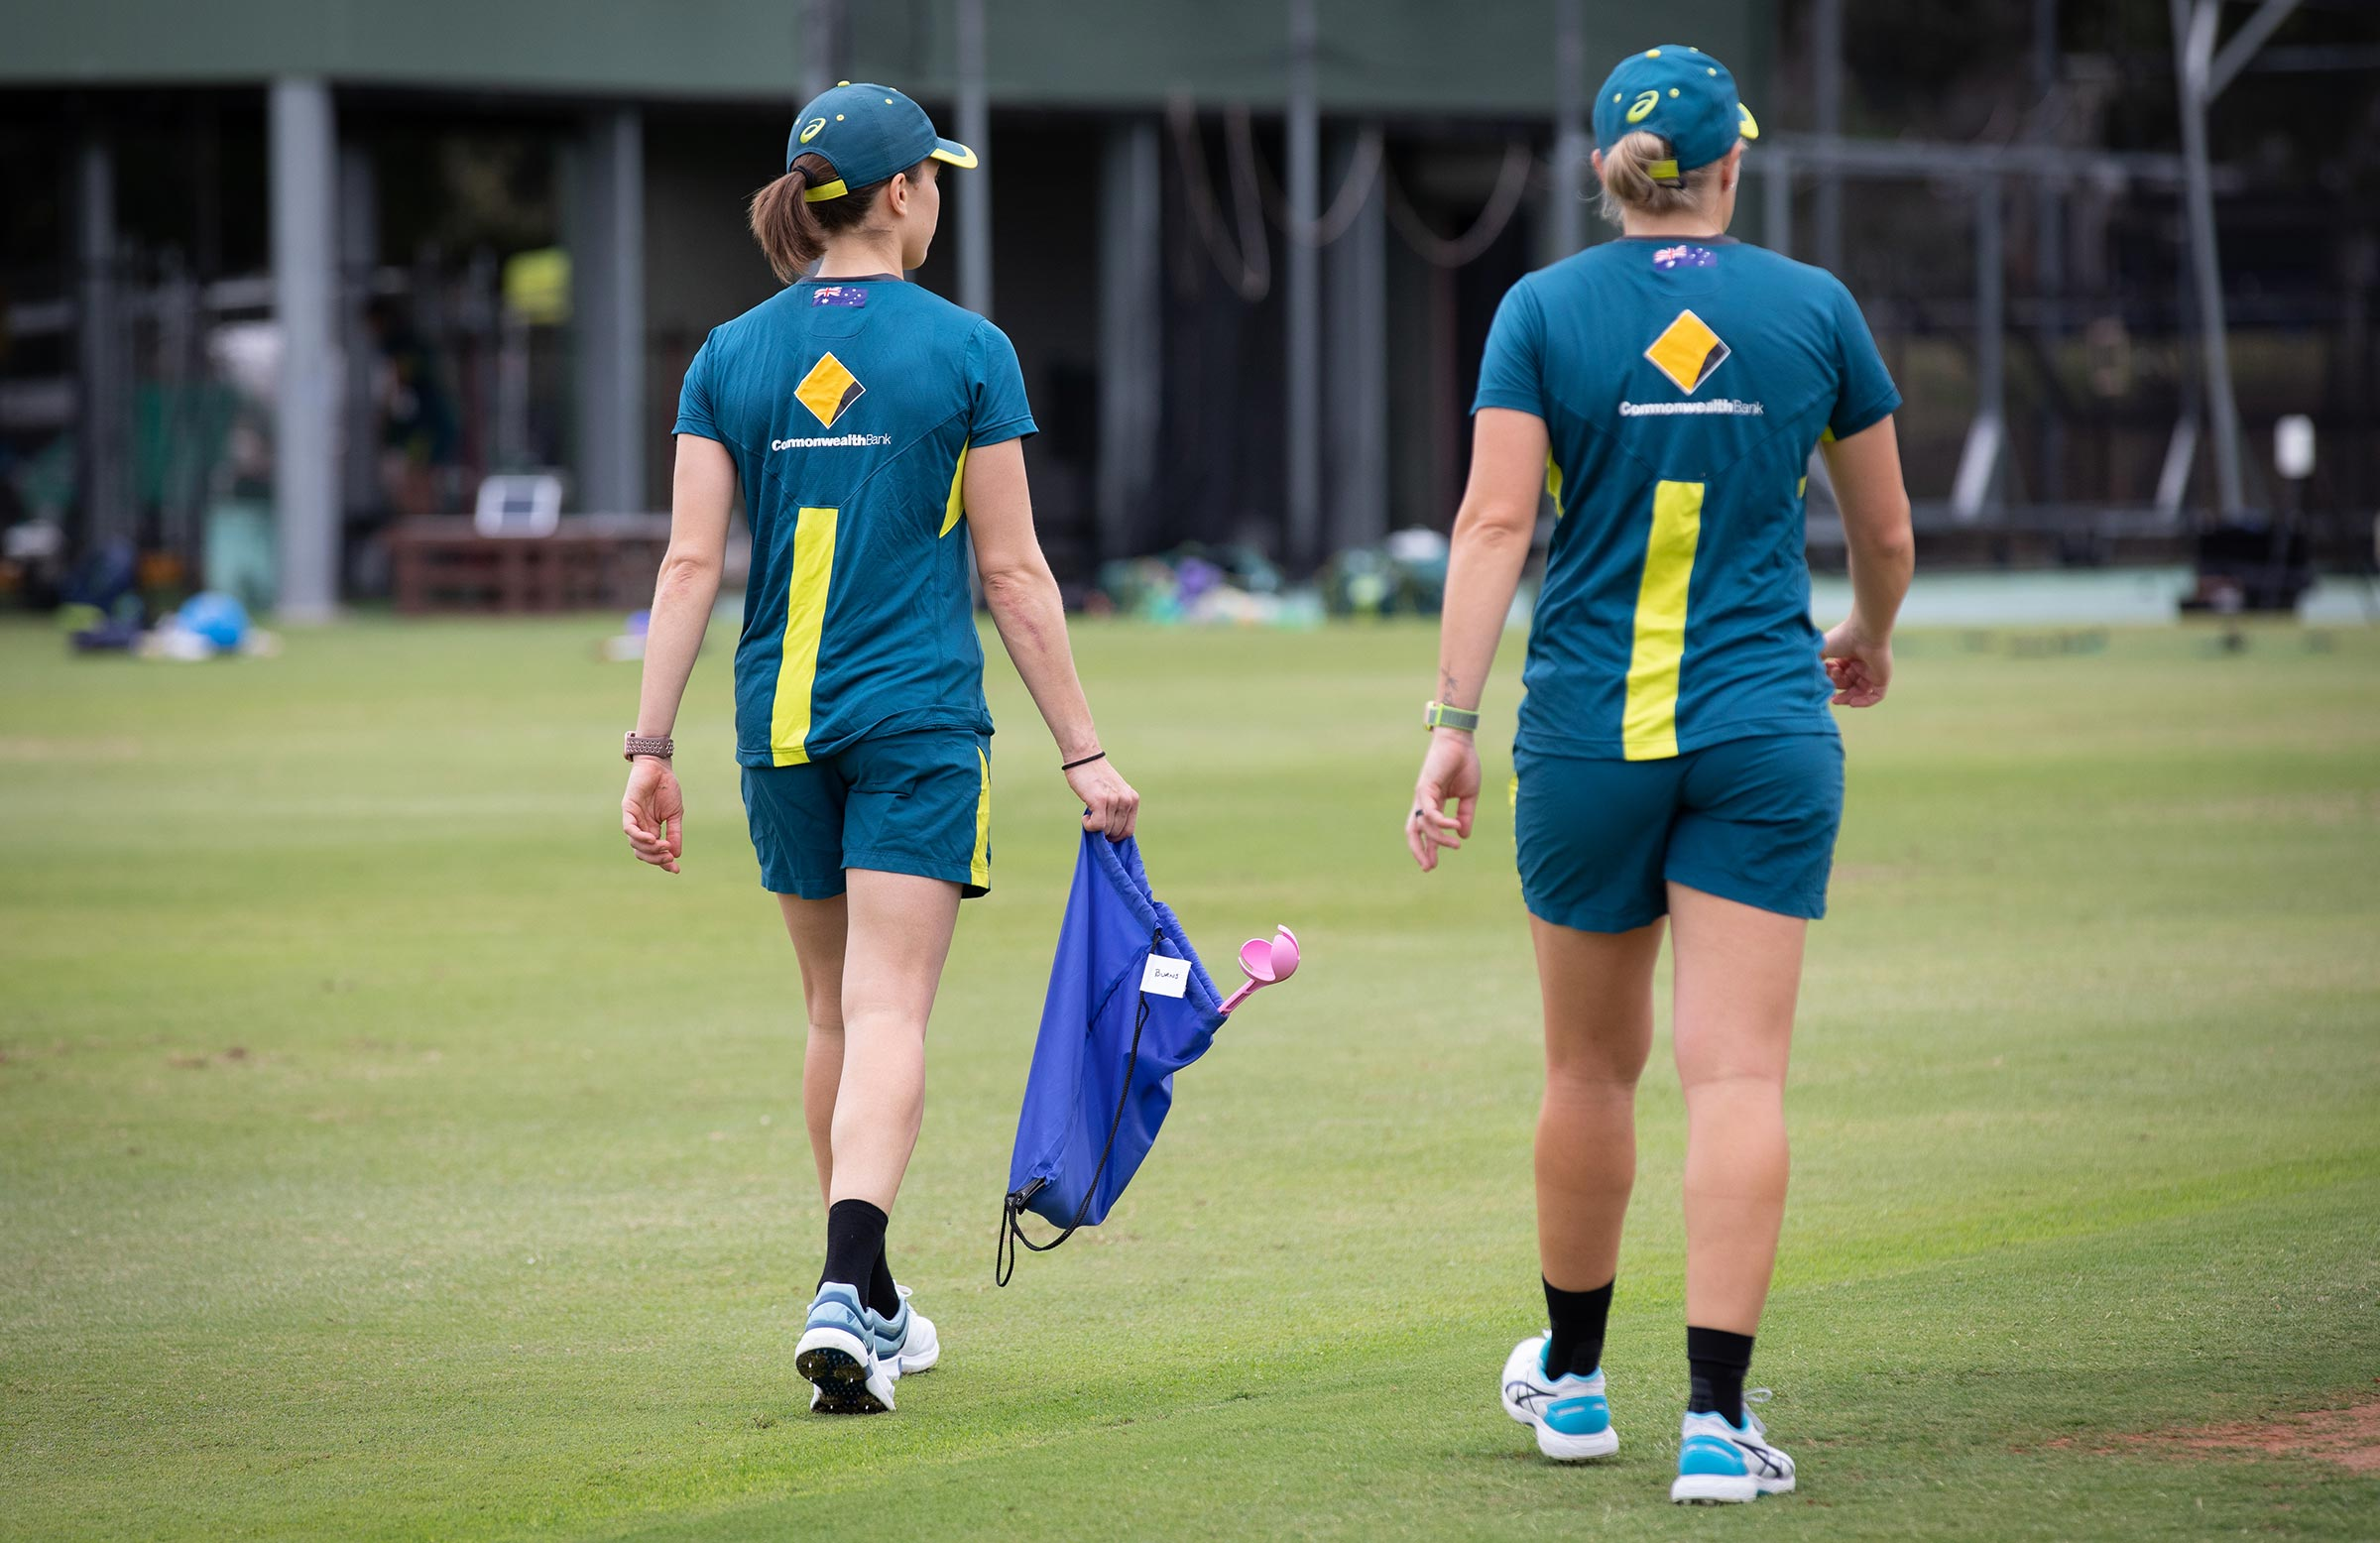 Erin Burns with her own personal kit bag at training // cricket.com.au